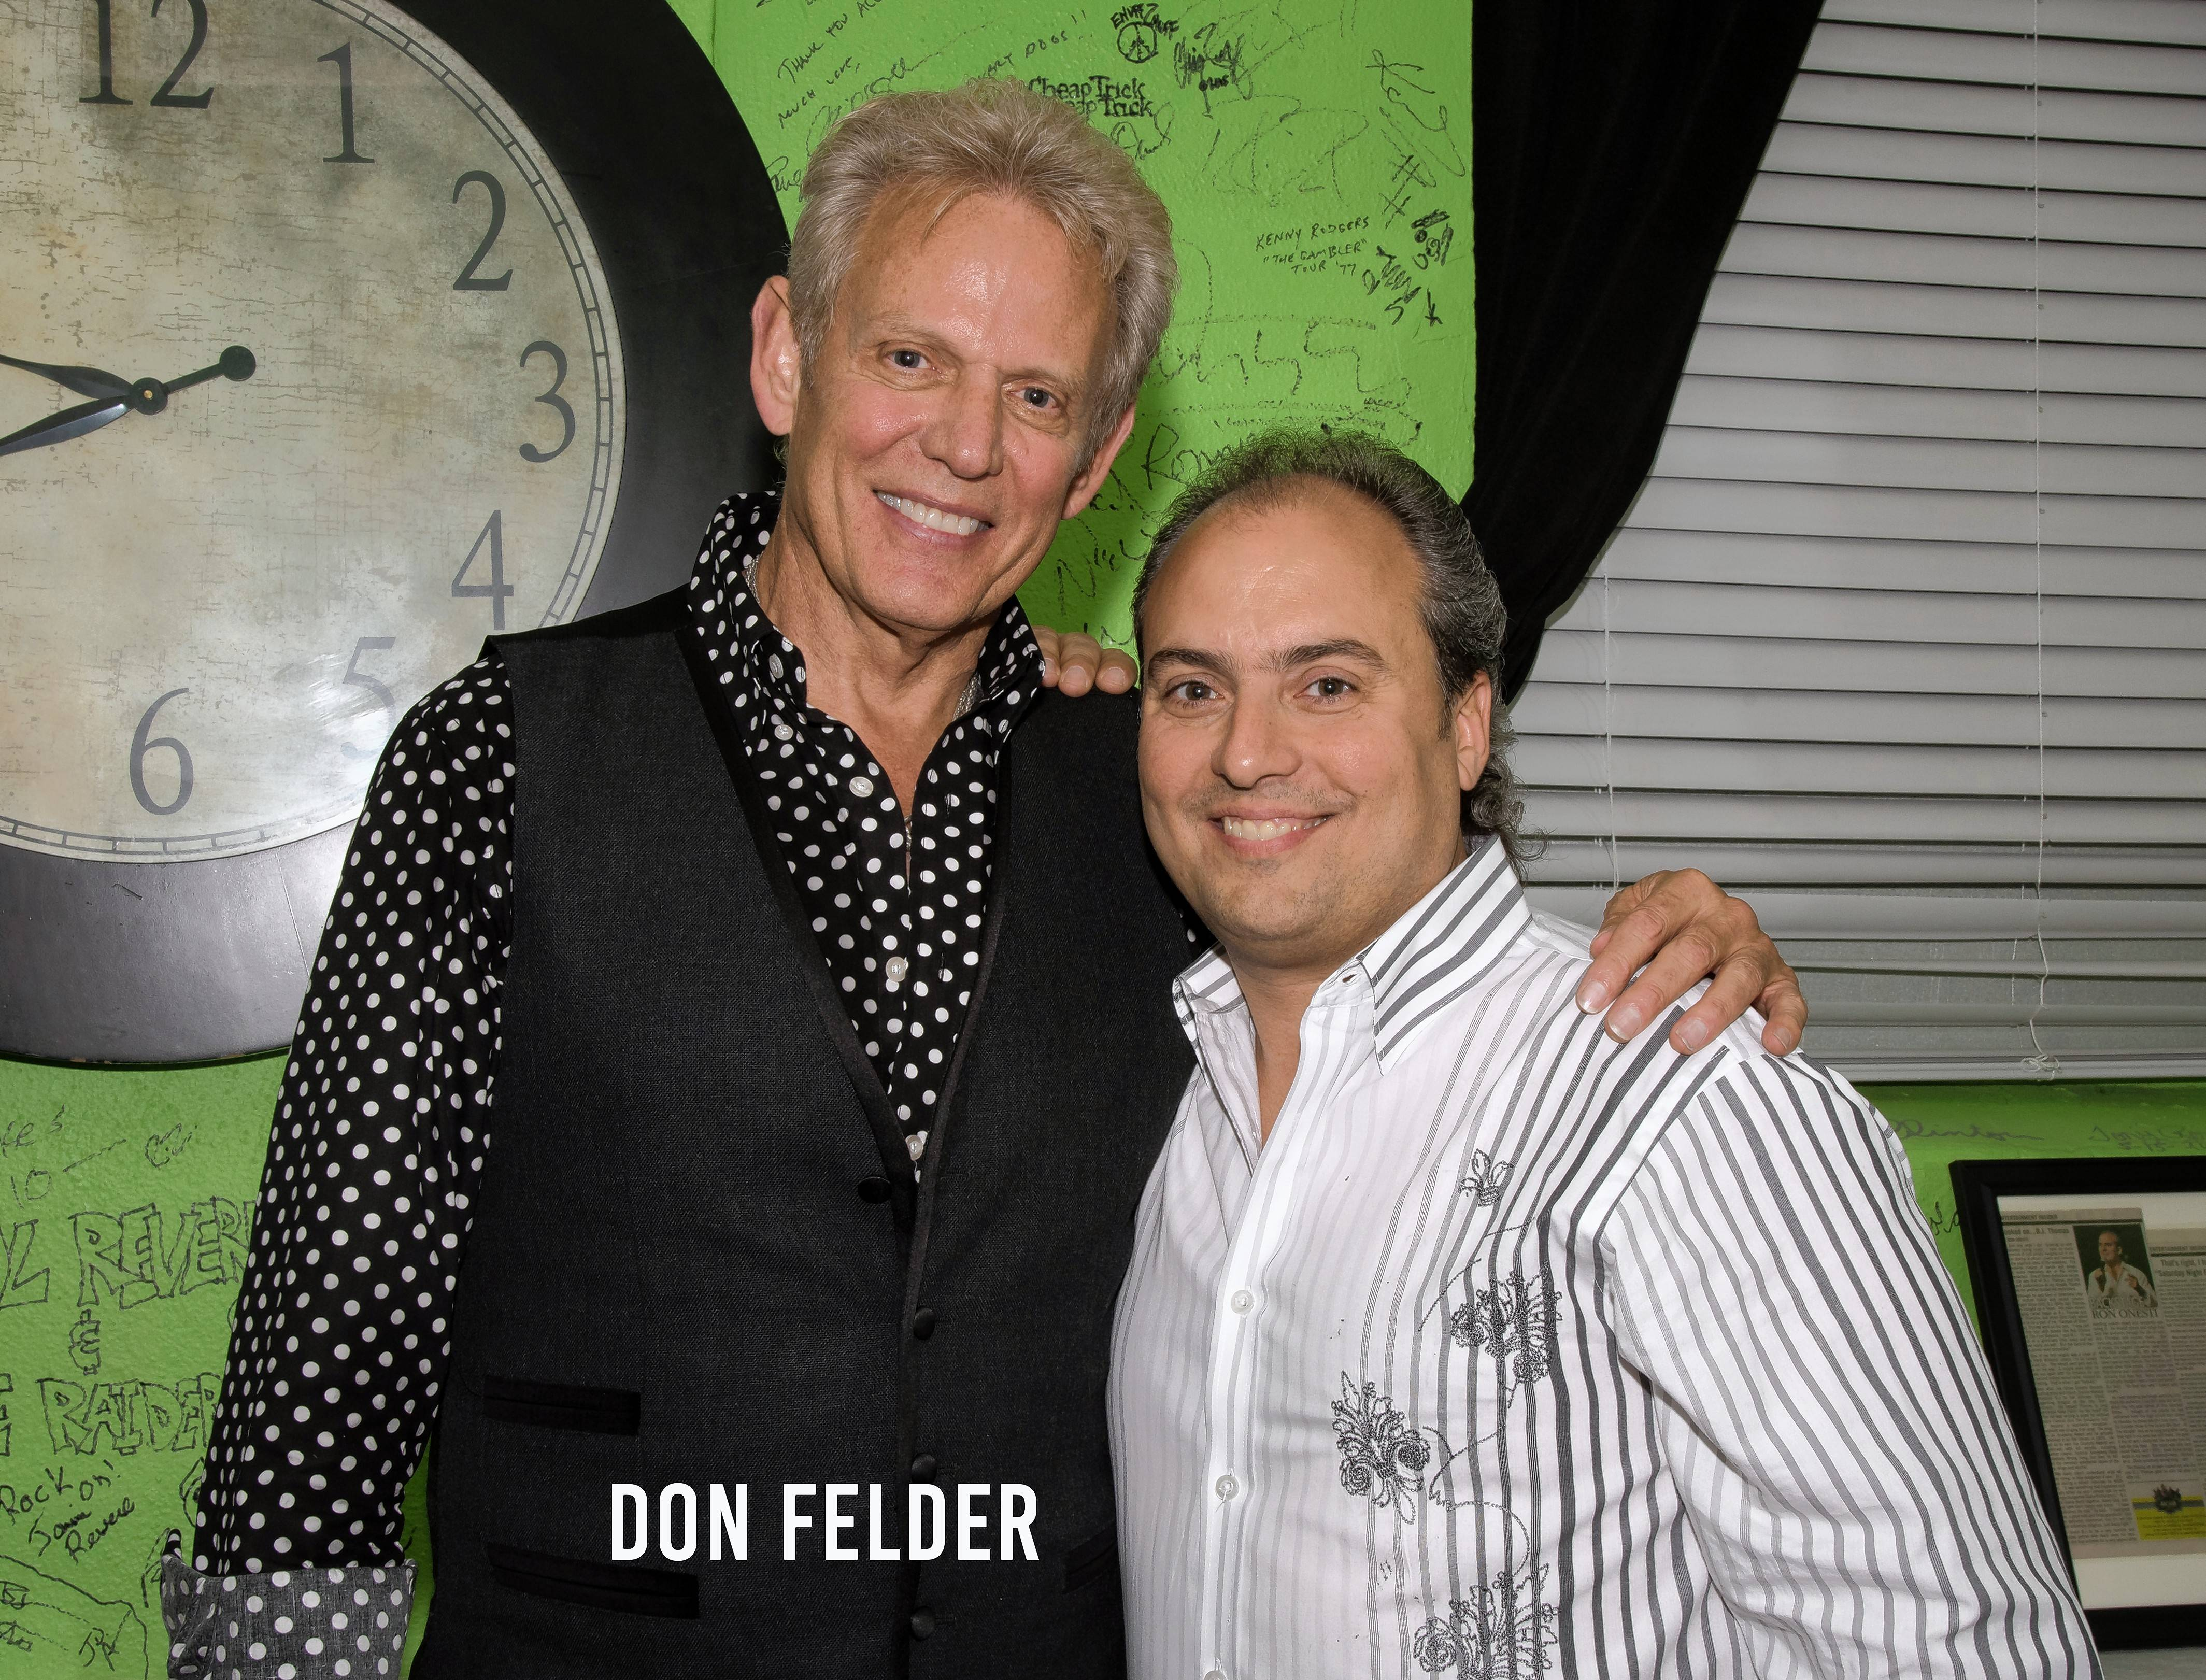 Don Felder, who returns to Ron Onesti's Arcada Theatre March 29, was a relatively unknown musician before hitting it big with the Eagles.